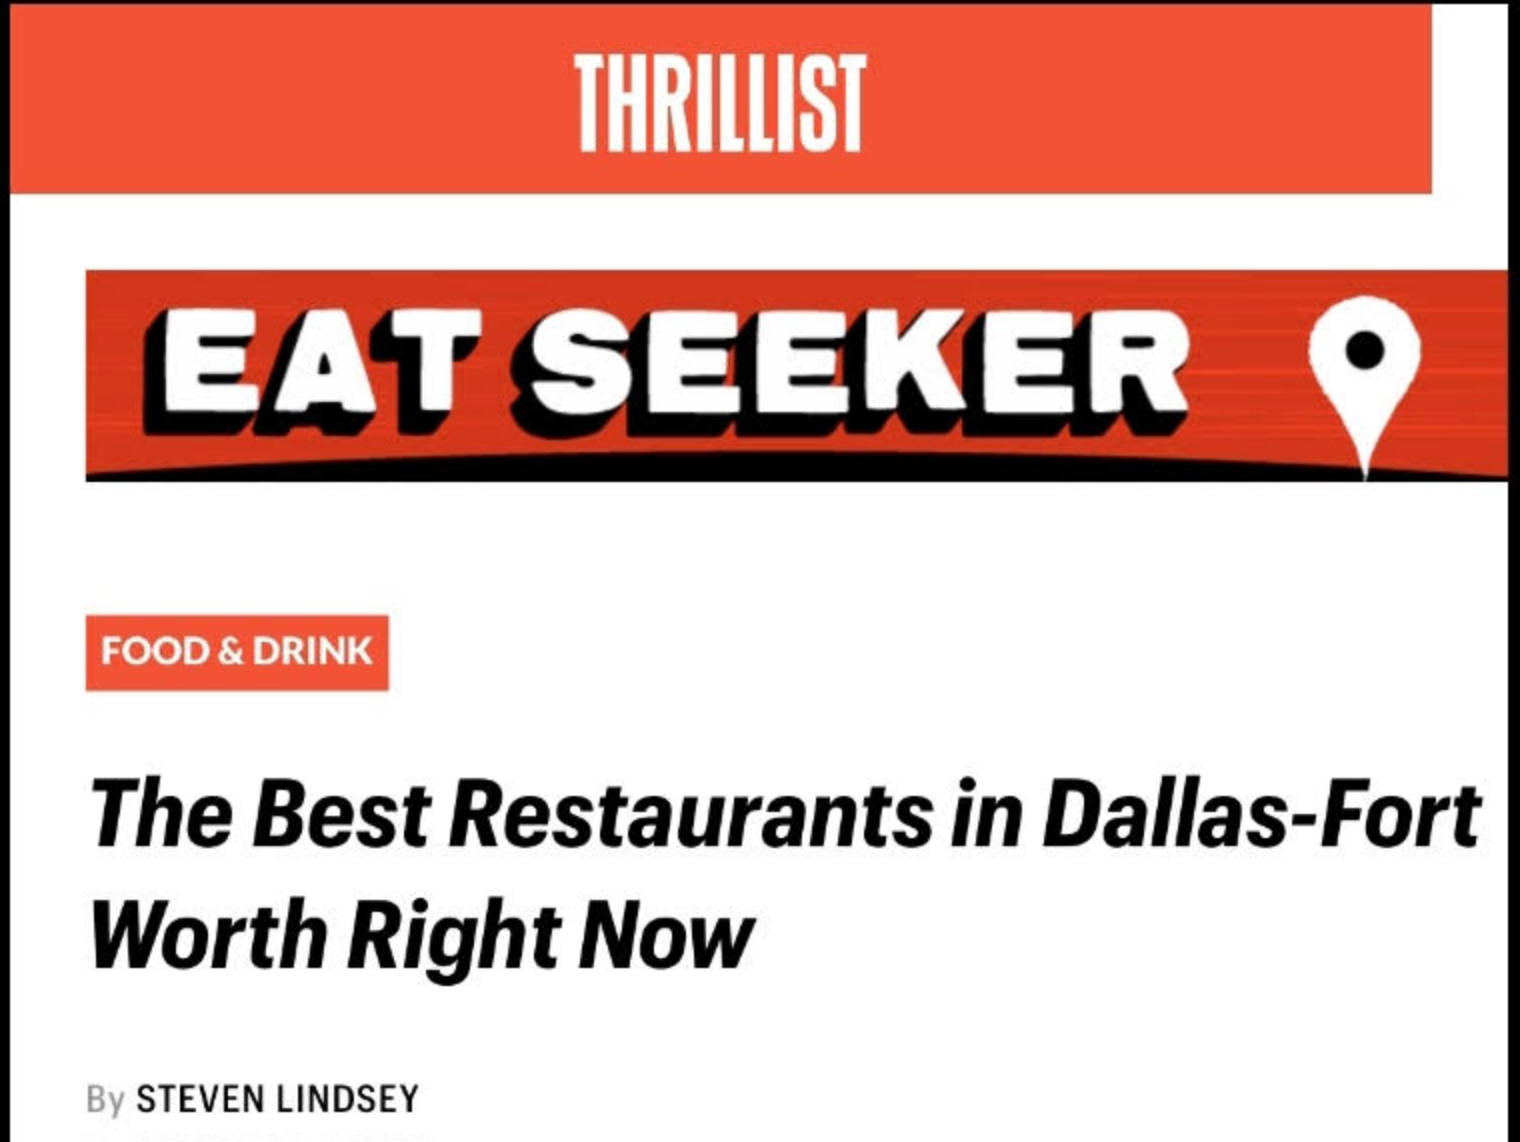 The Best Restaurants in Dallas-Fort Worth Right Now